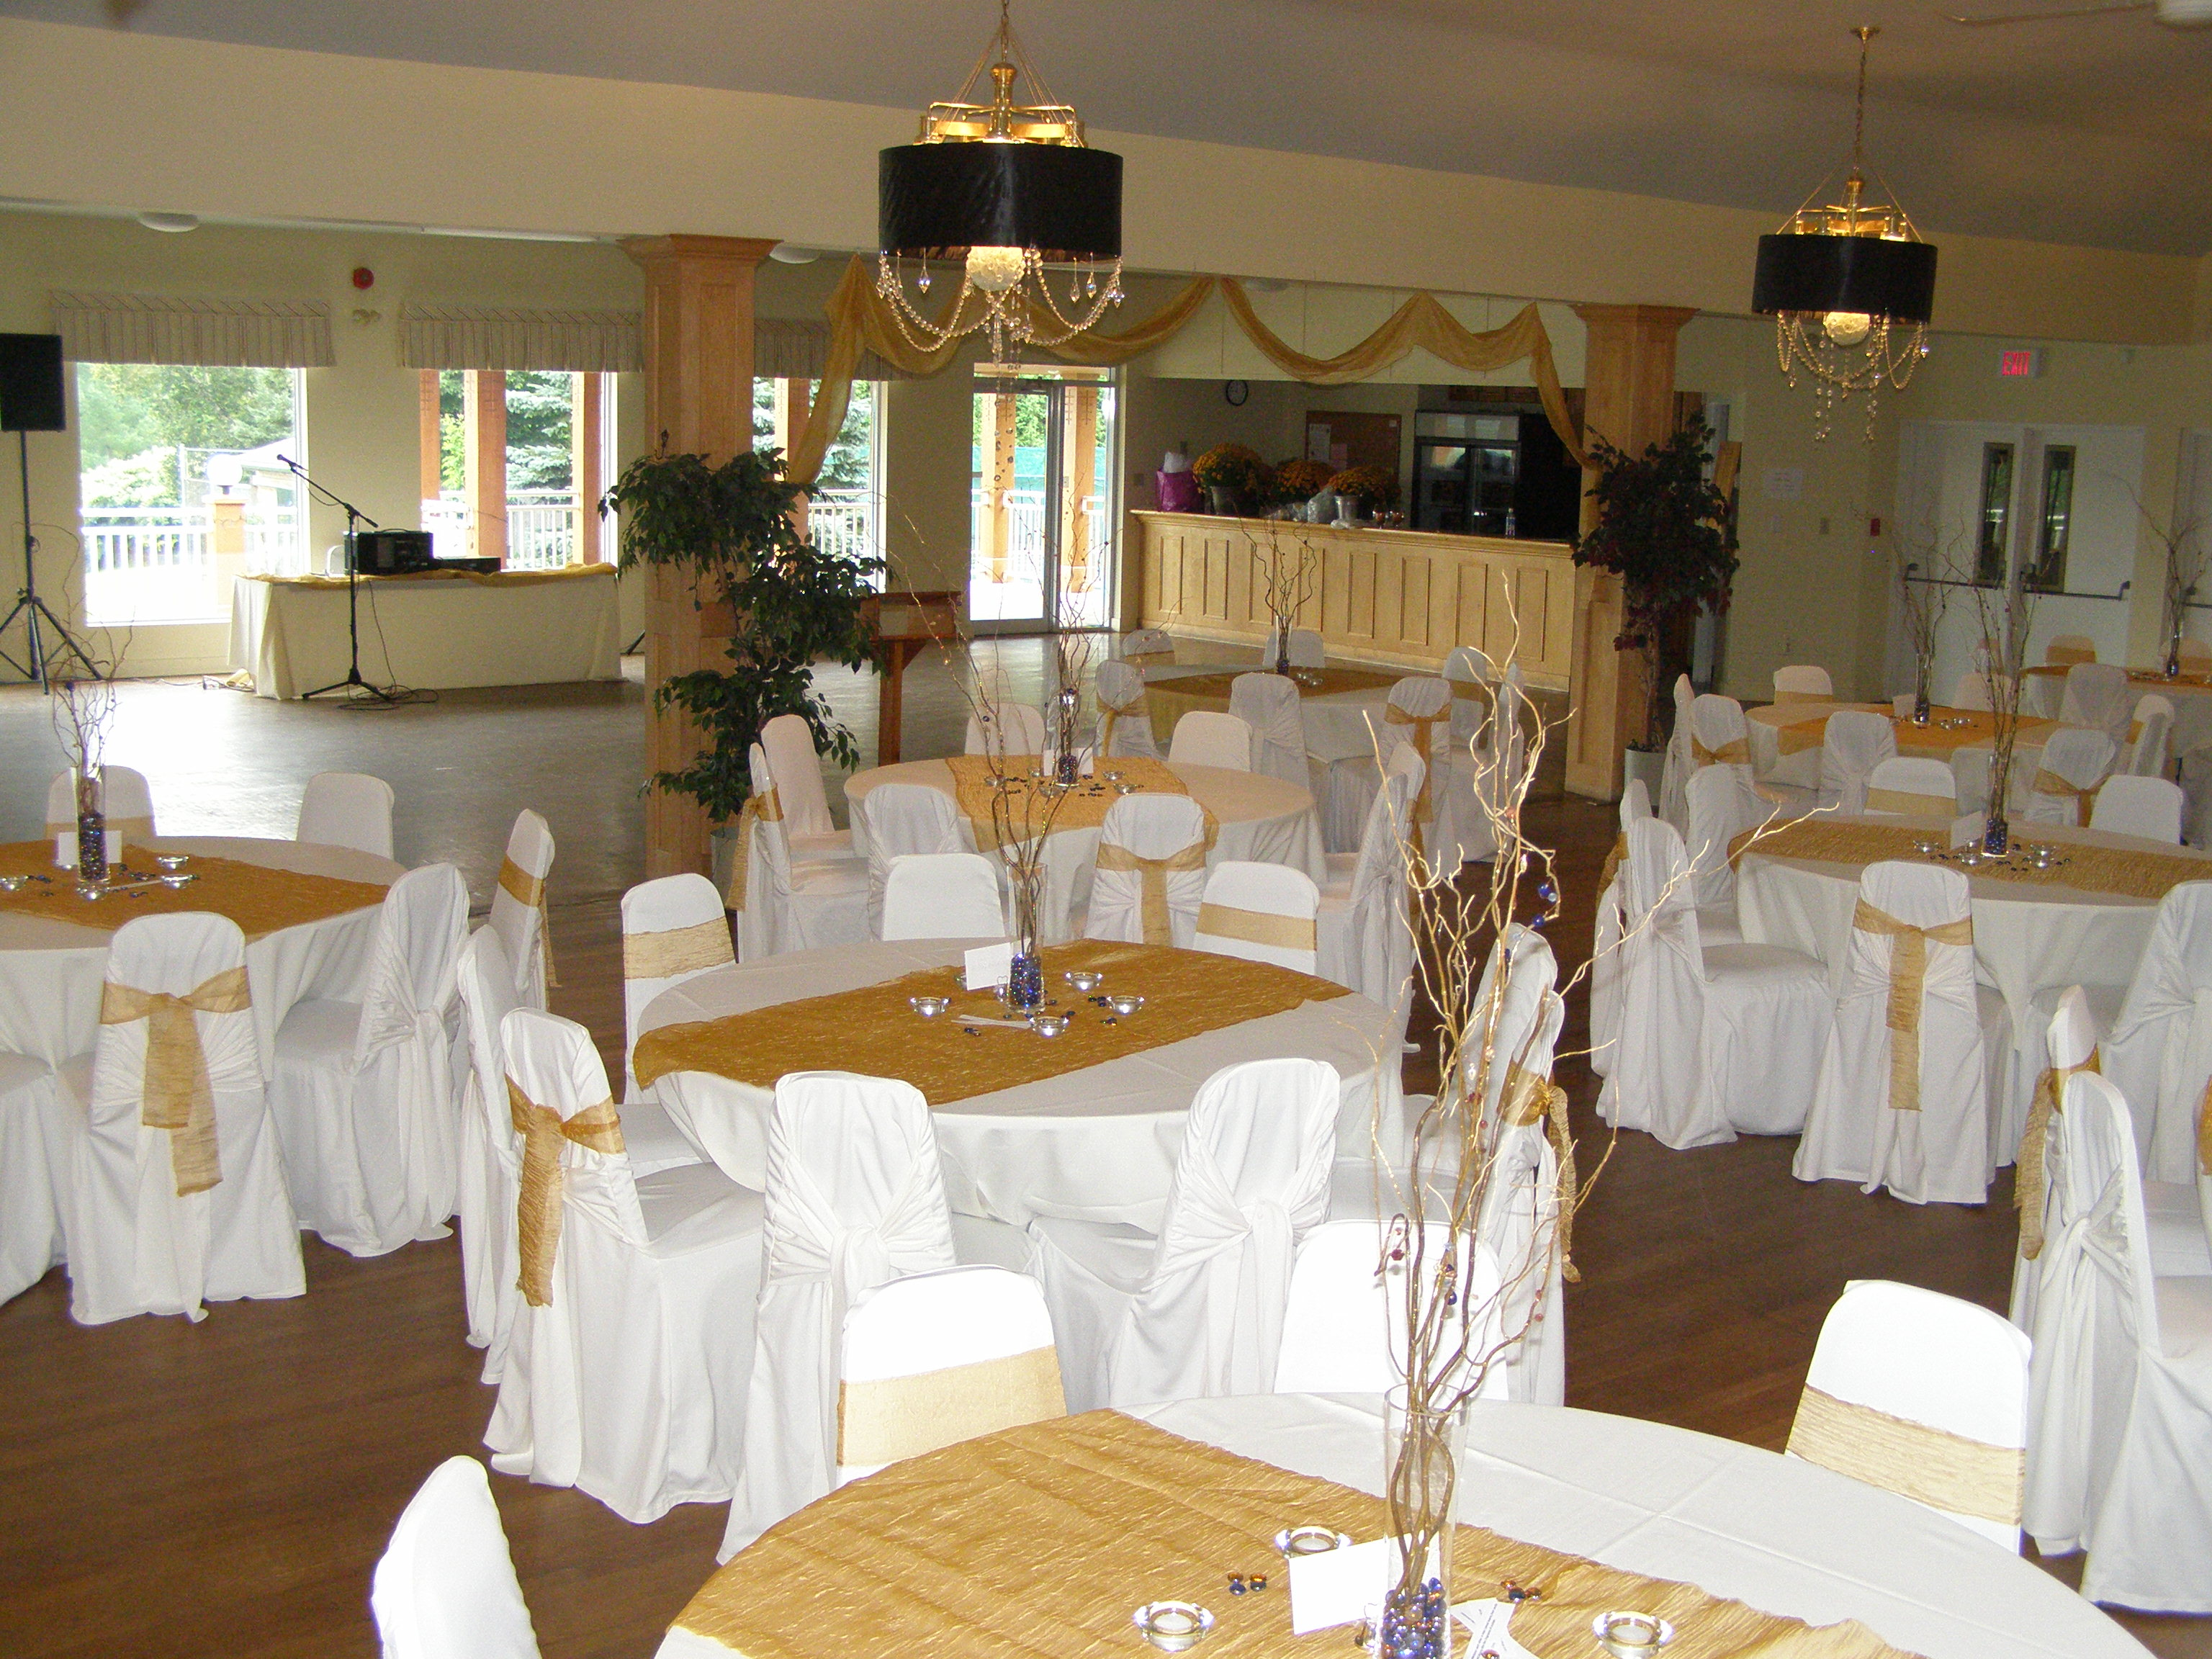 Mono Community Centre Banquet Room Decorated